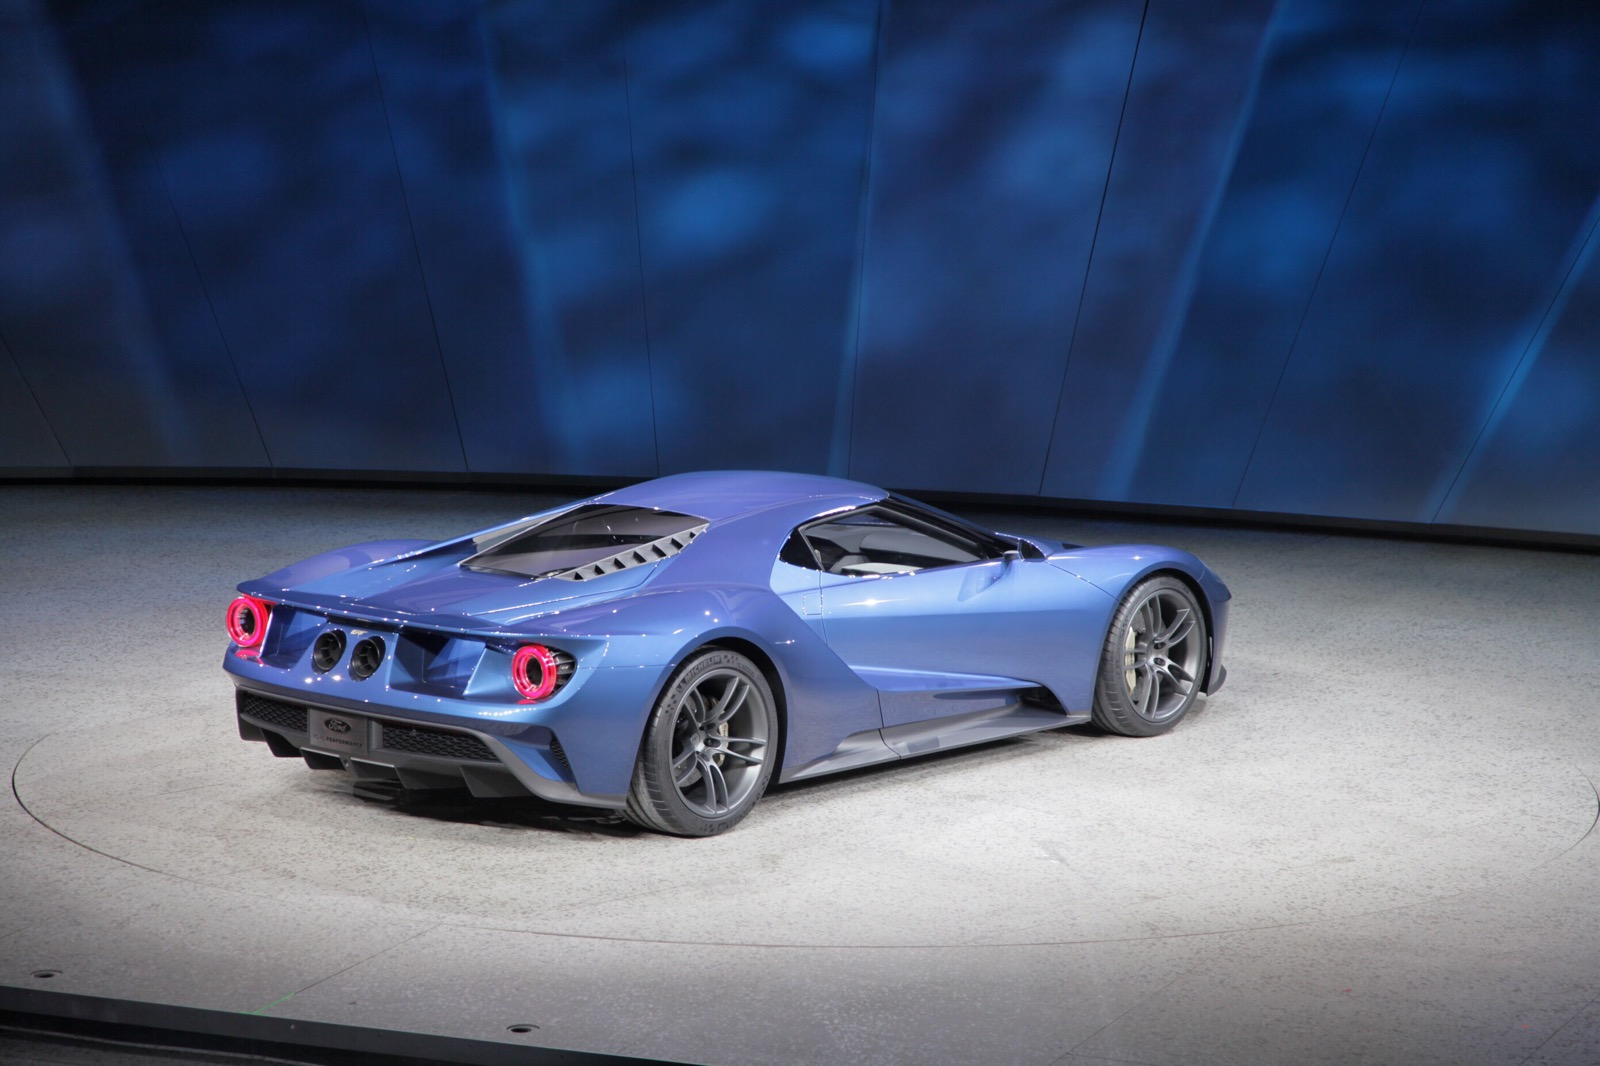 Ford ford gt images : 2017 Ford GT Review - Top Speed